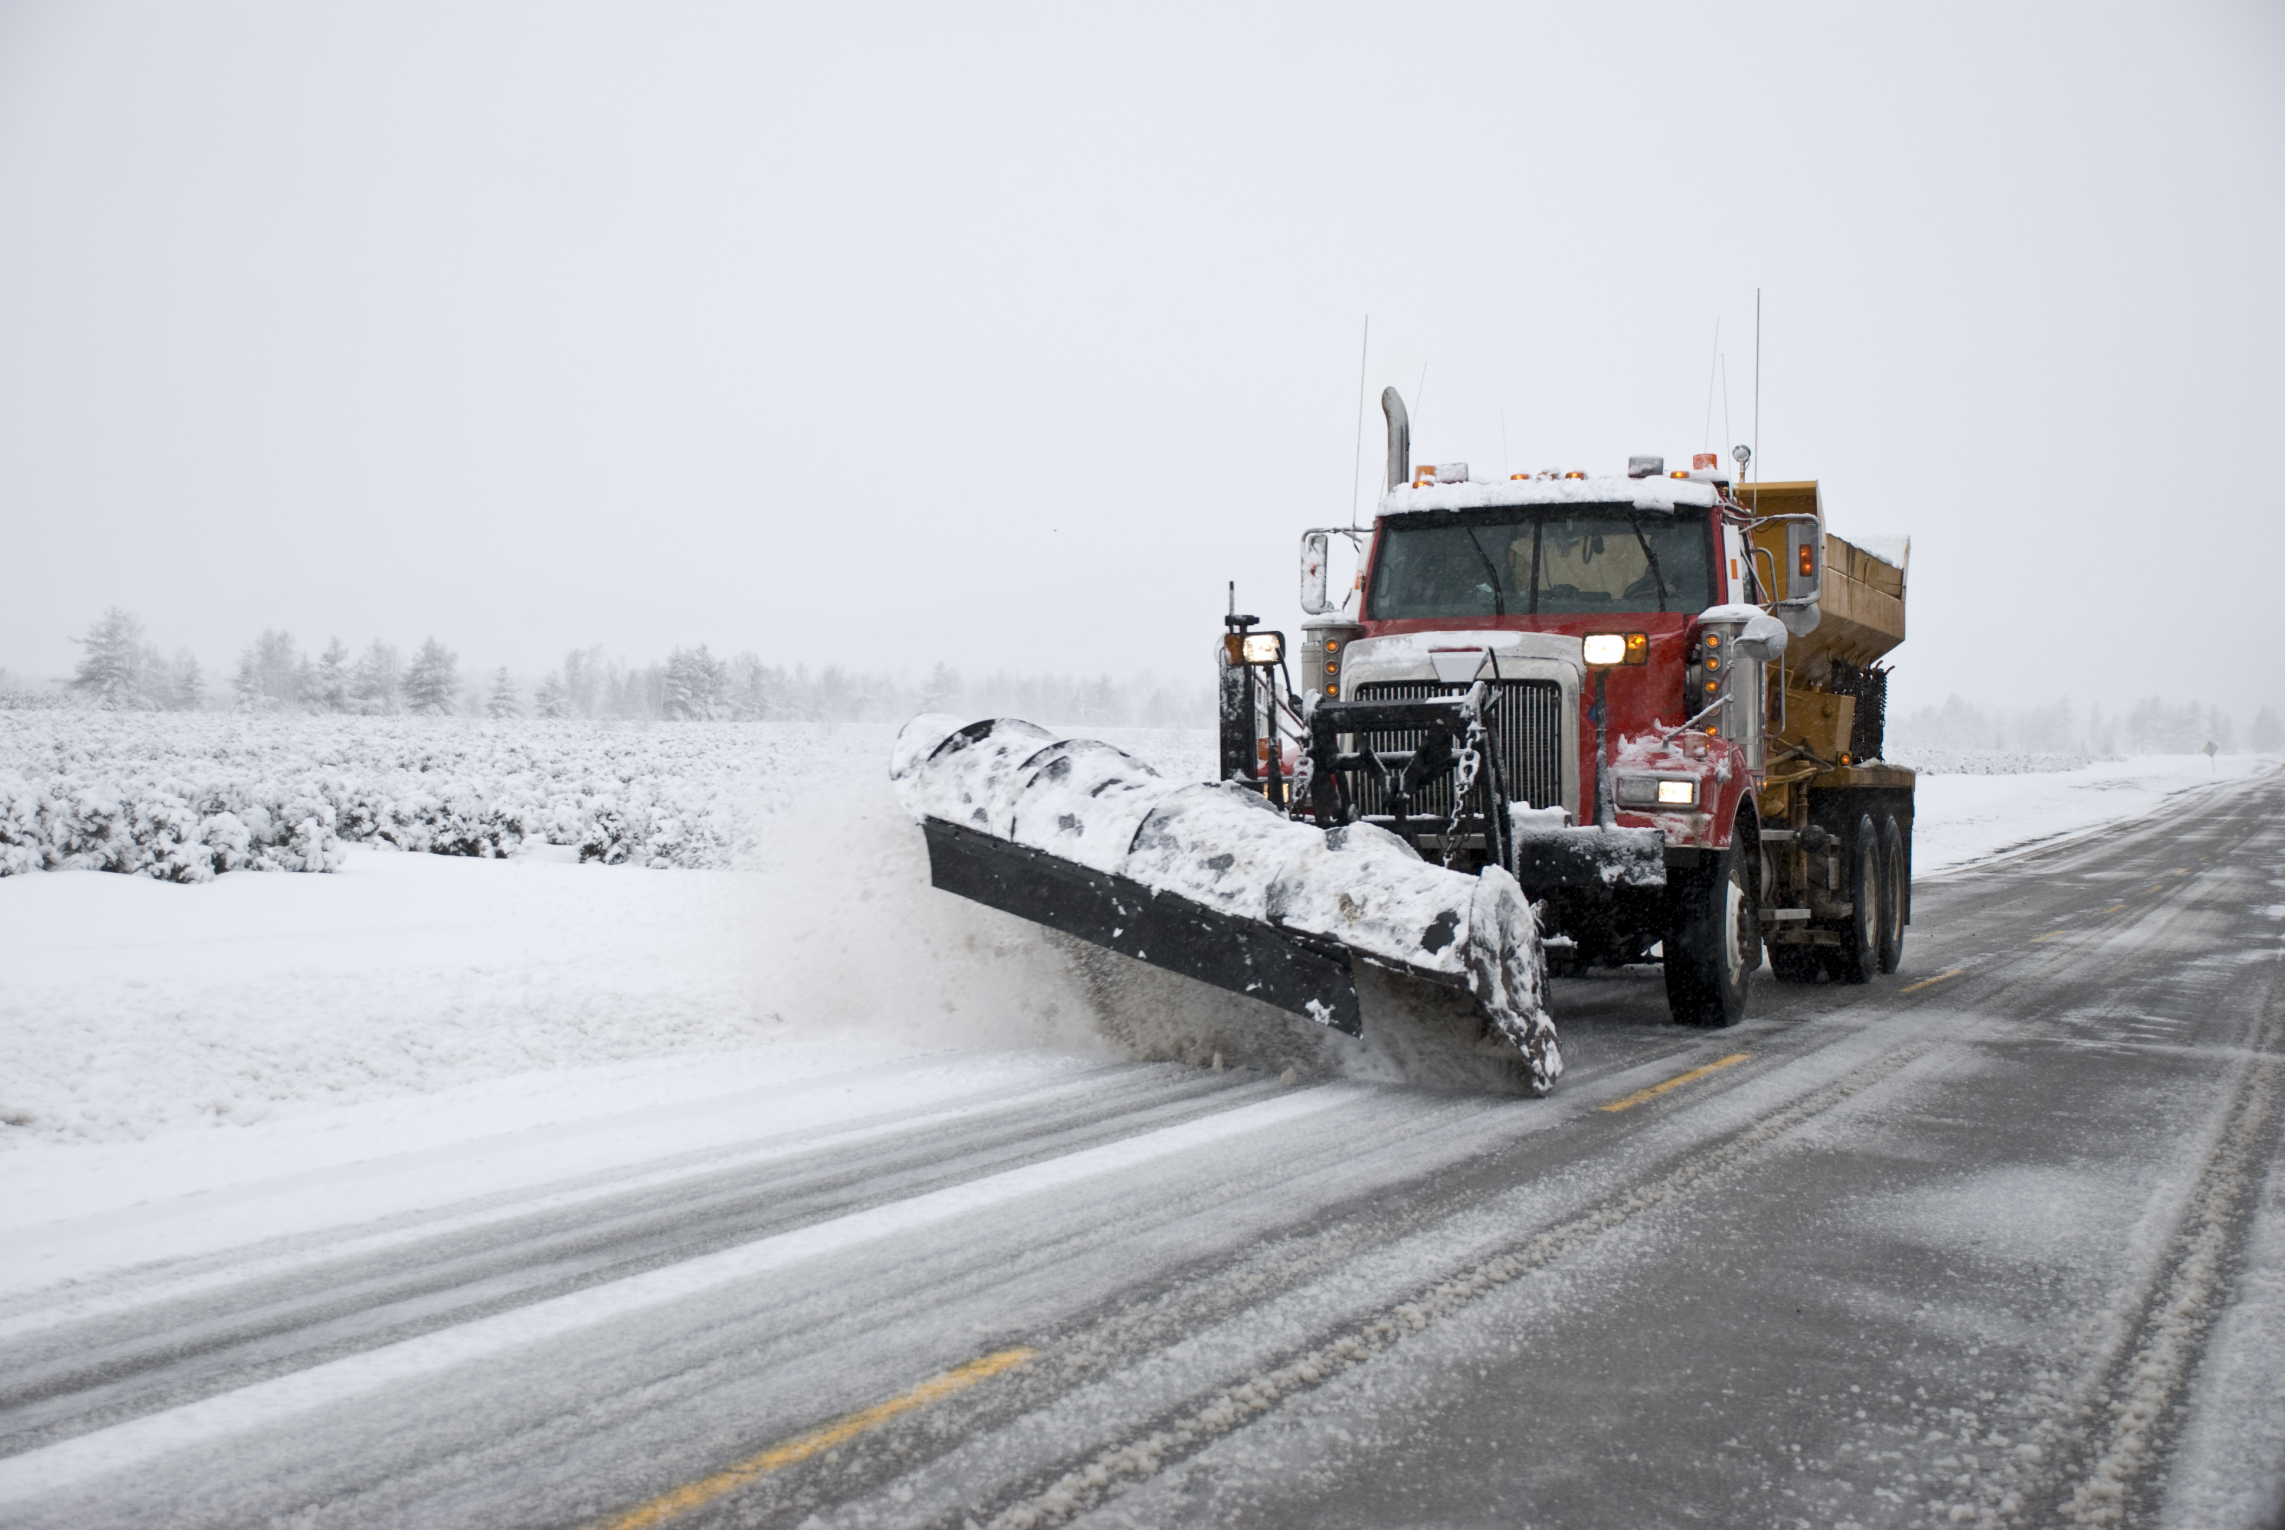 3 Snow Plow Hd Wallpapers Backgrounds Wallpaper Abyss